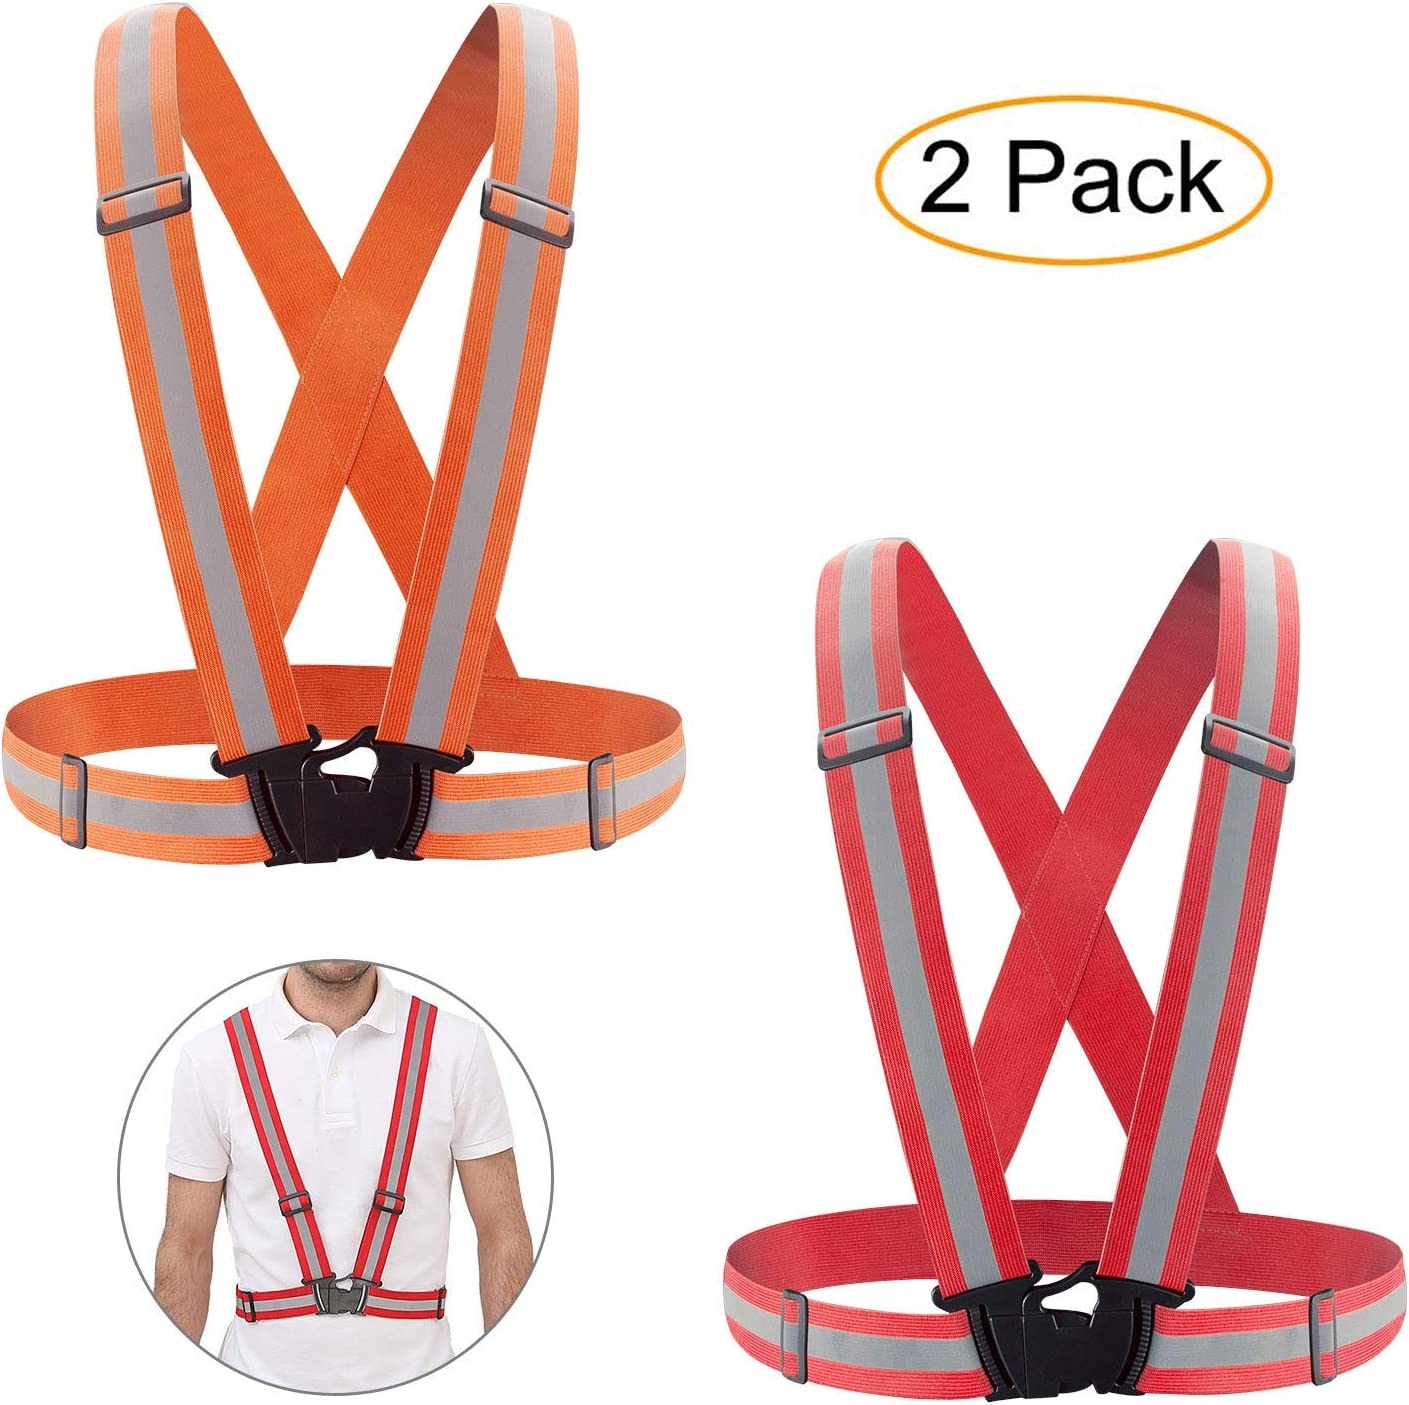 KUYOU Reflective Vest,2 Pack High Visibility Vest Safety Gear Elastic and Adjustable Safety Vest for Running, Cycling, Motorcycle Safety, Dog Walking,Jogging